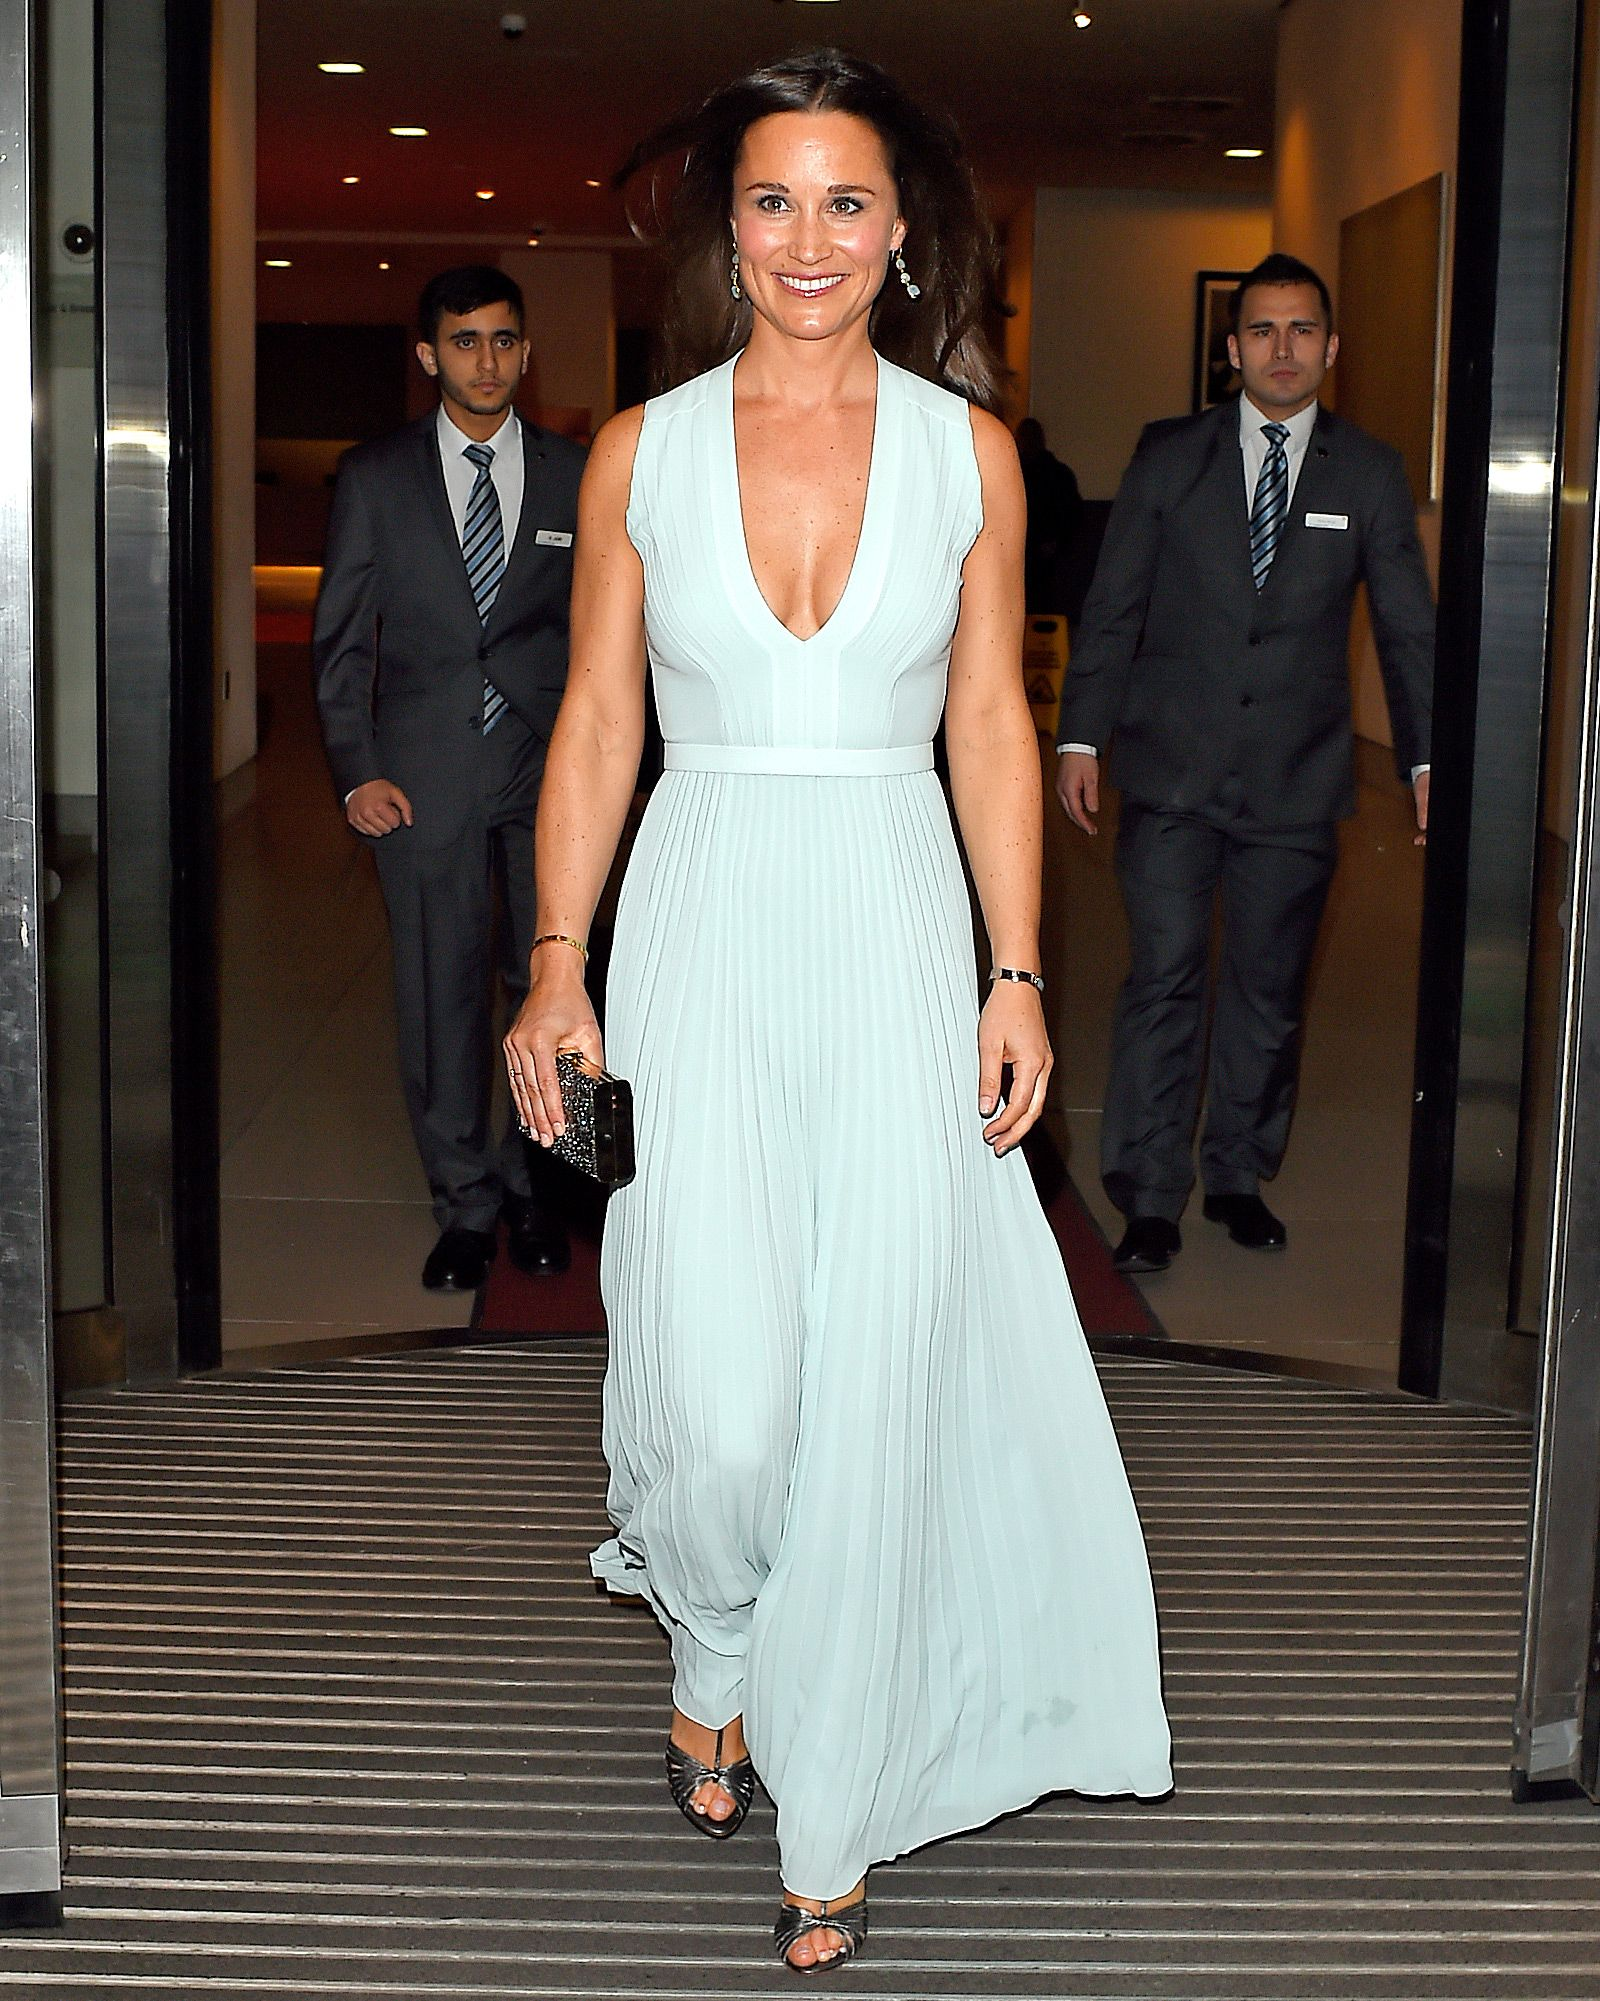 Cleavage Pippa Middleton nude photos 2019